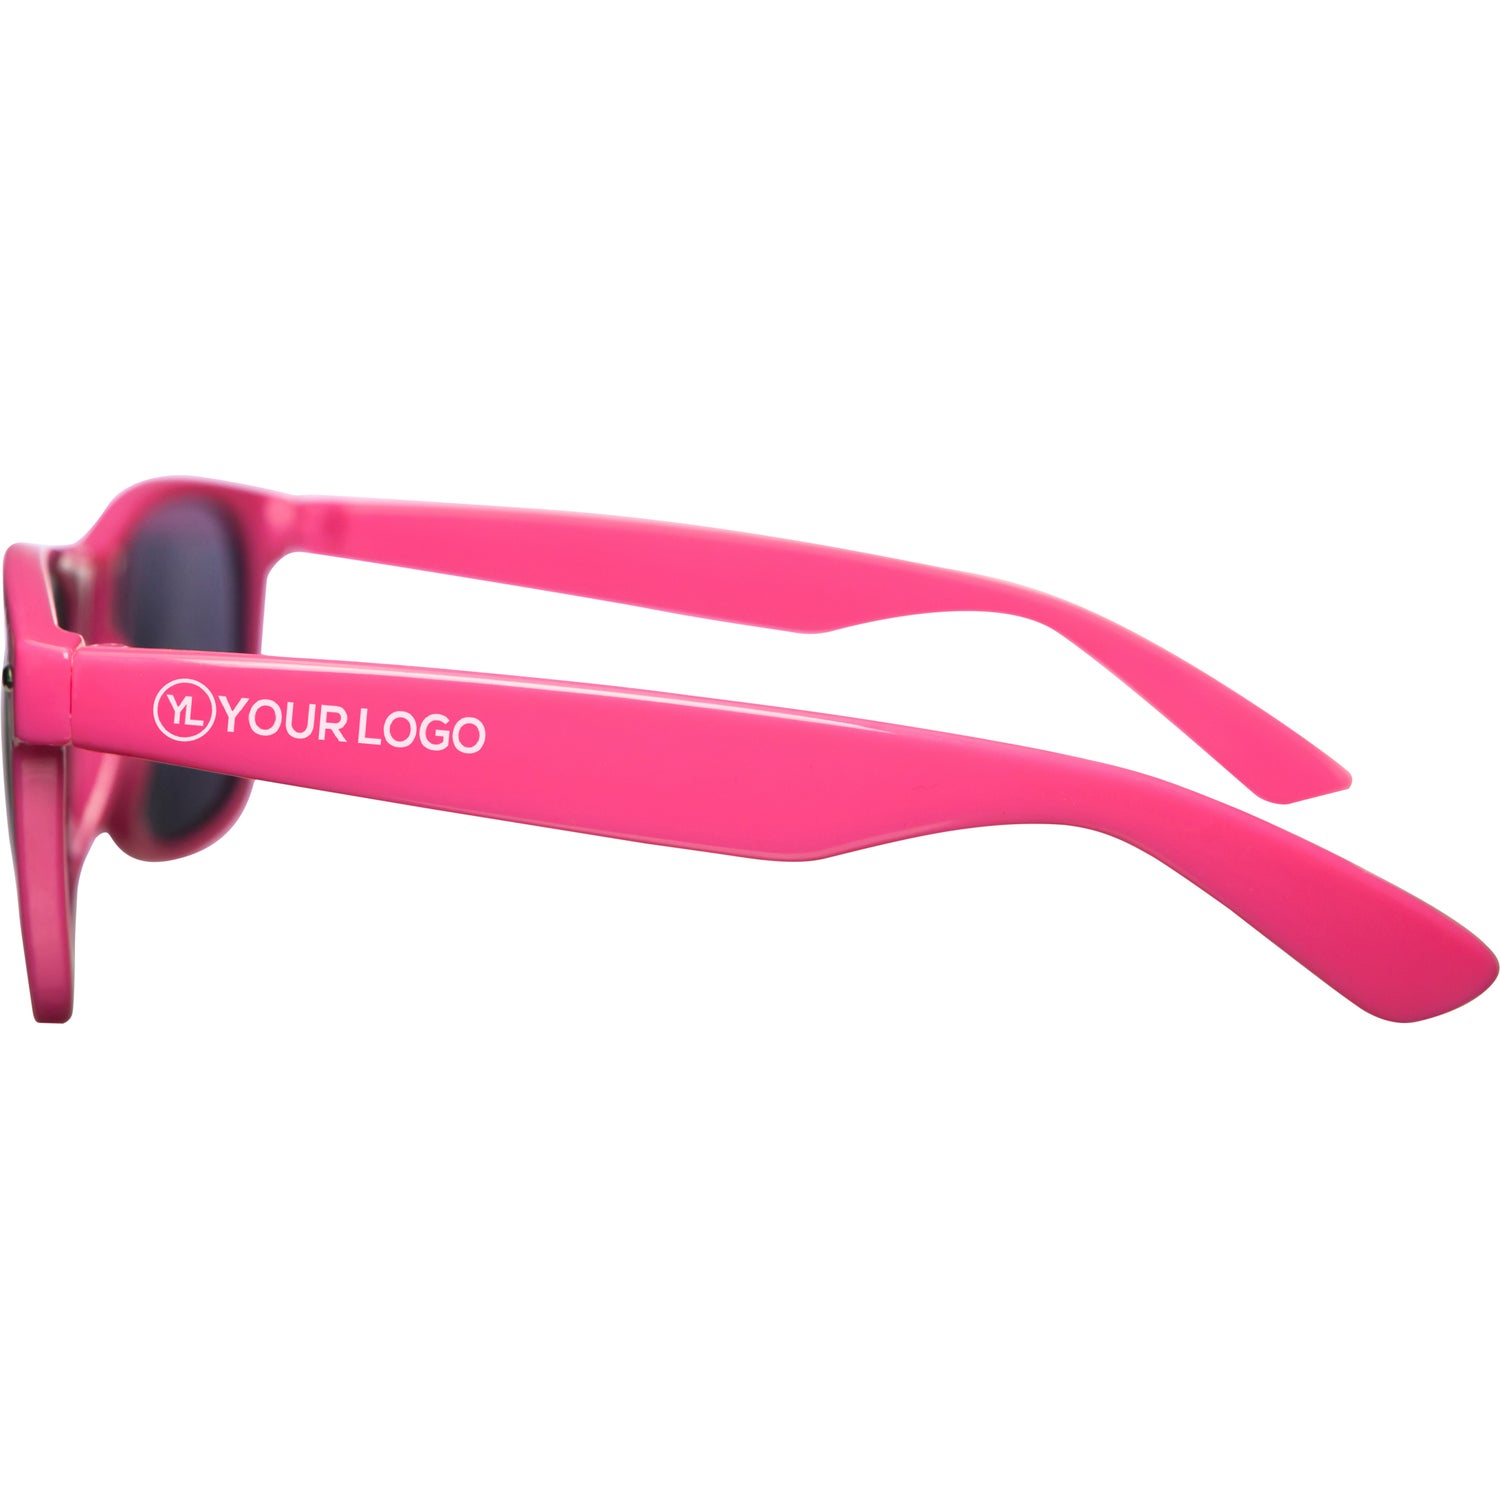 Promotional Glossy Sunglasses with Custom Logo for $1.30 Ea.